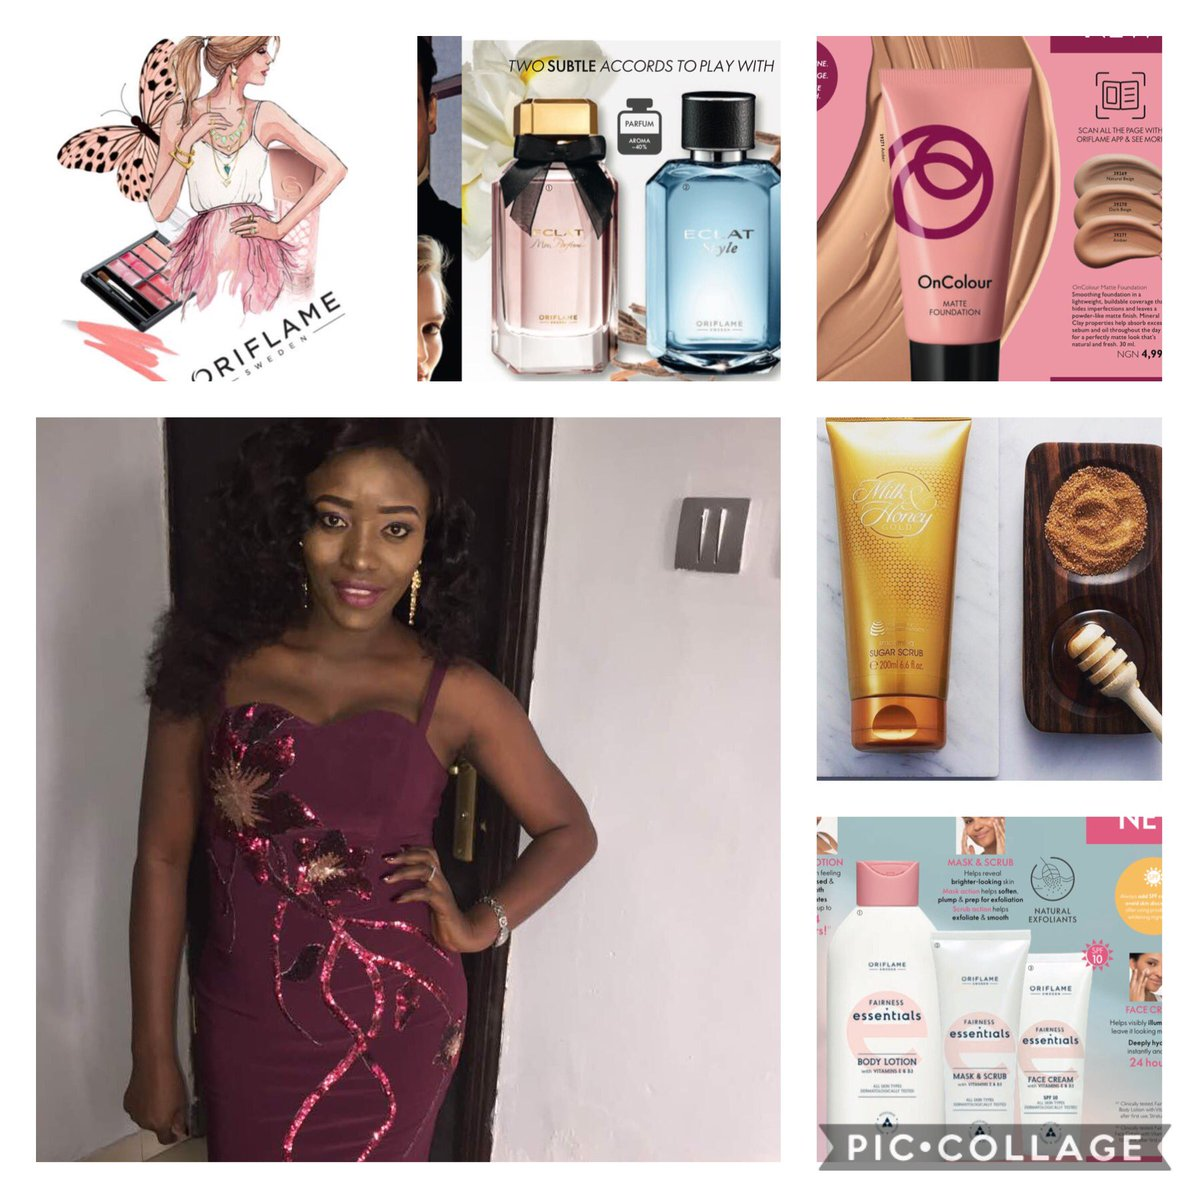 Happy Sunday ❤️❤️❤️  Let me be your plug for beauty products (oriflame)  Dm or WhatsApp 08136350466 to place your orders for yourself or loved ones  #oriflame #sundayvibes #beautybysweden #perfume #personalbeautyshopper #